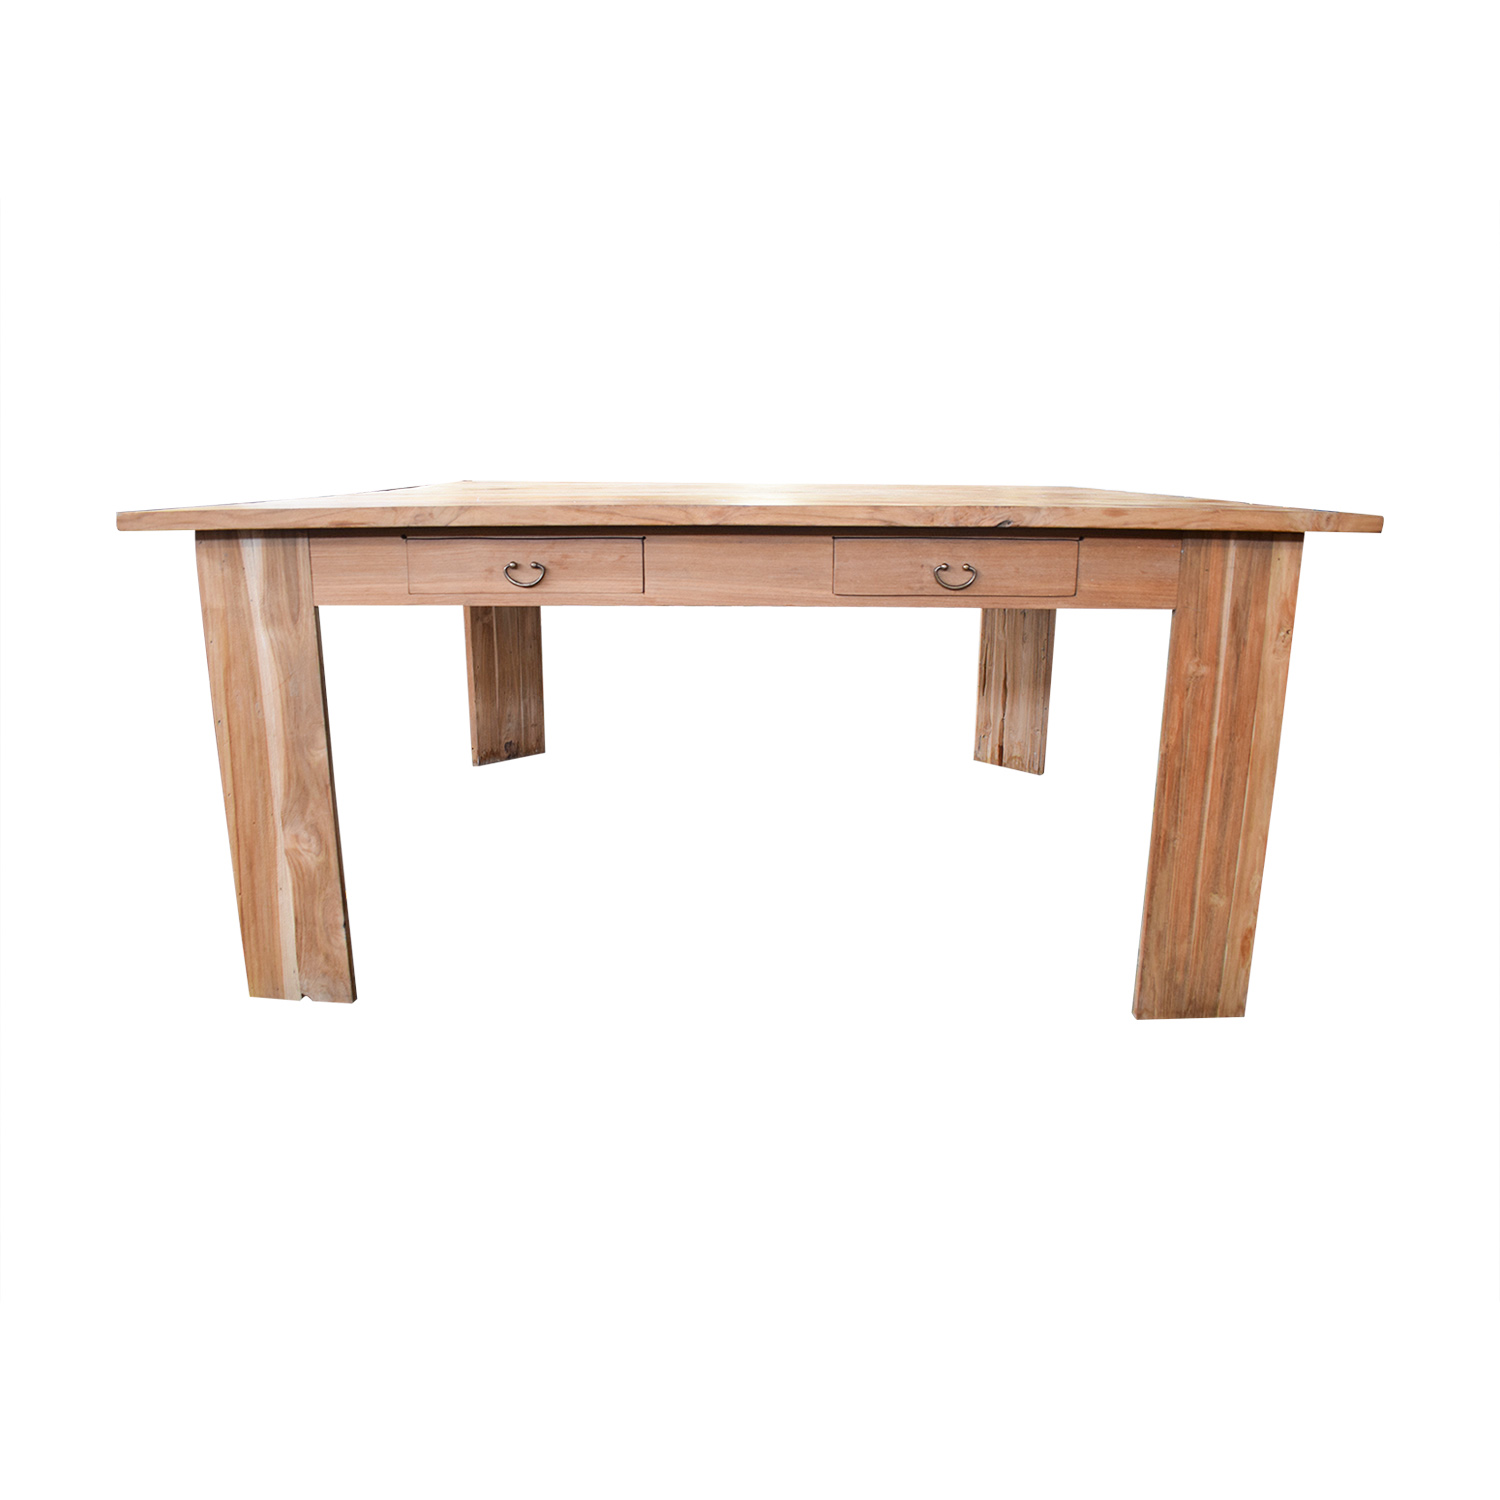 Rustic Wood Square Dining Table for sale